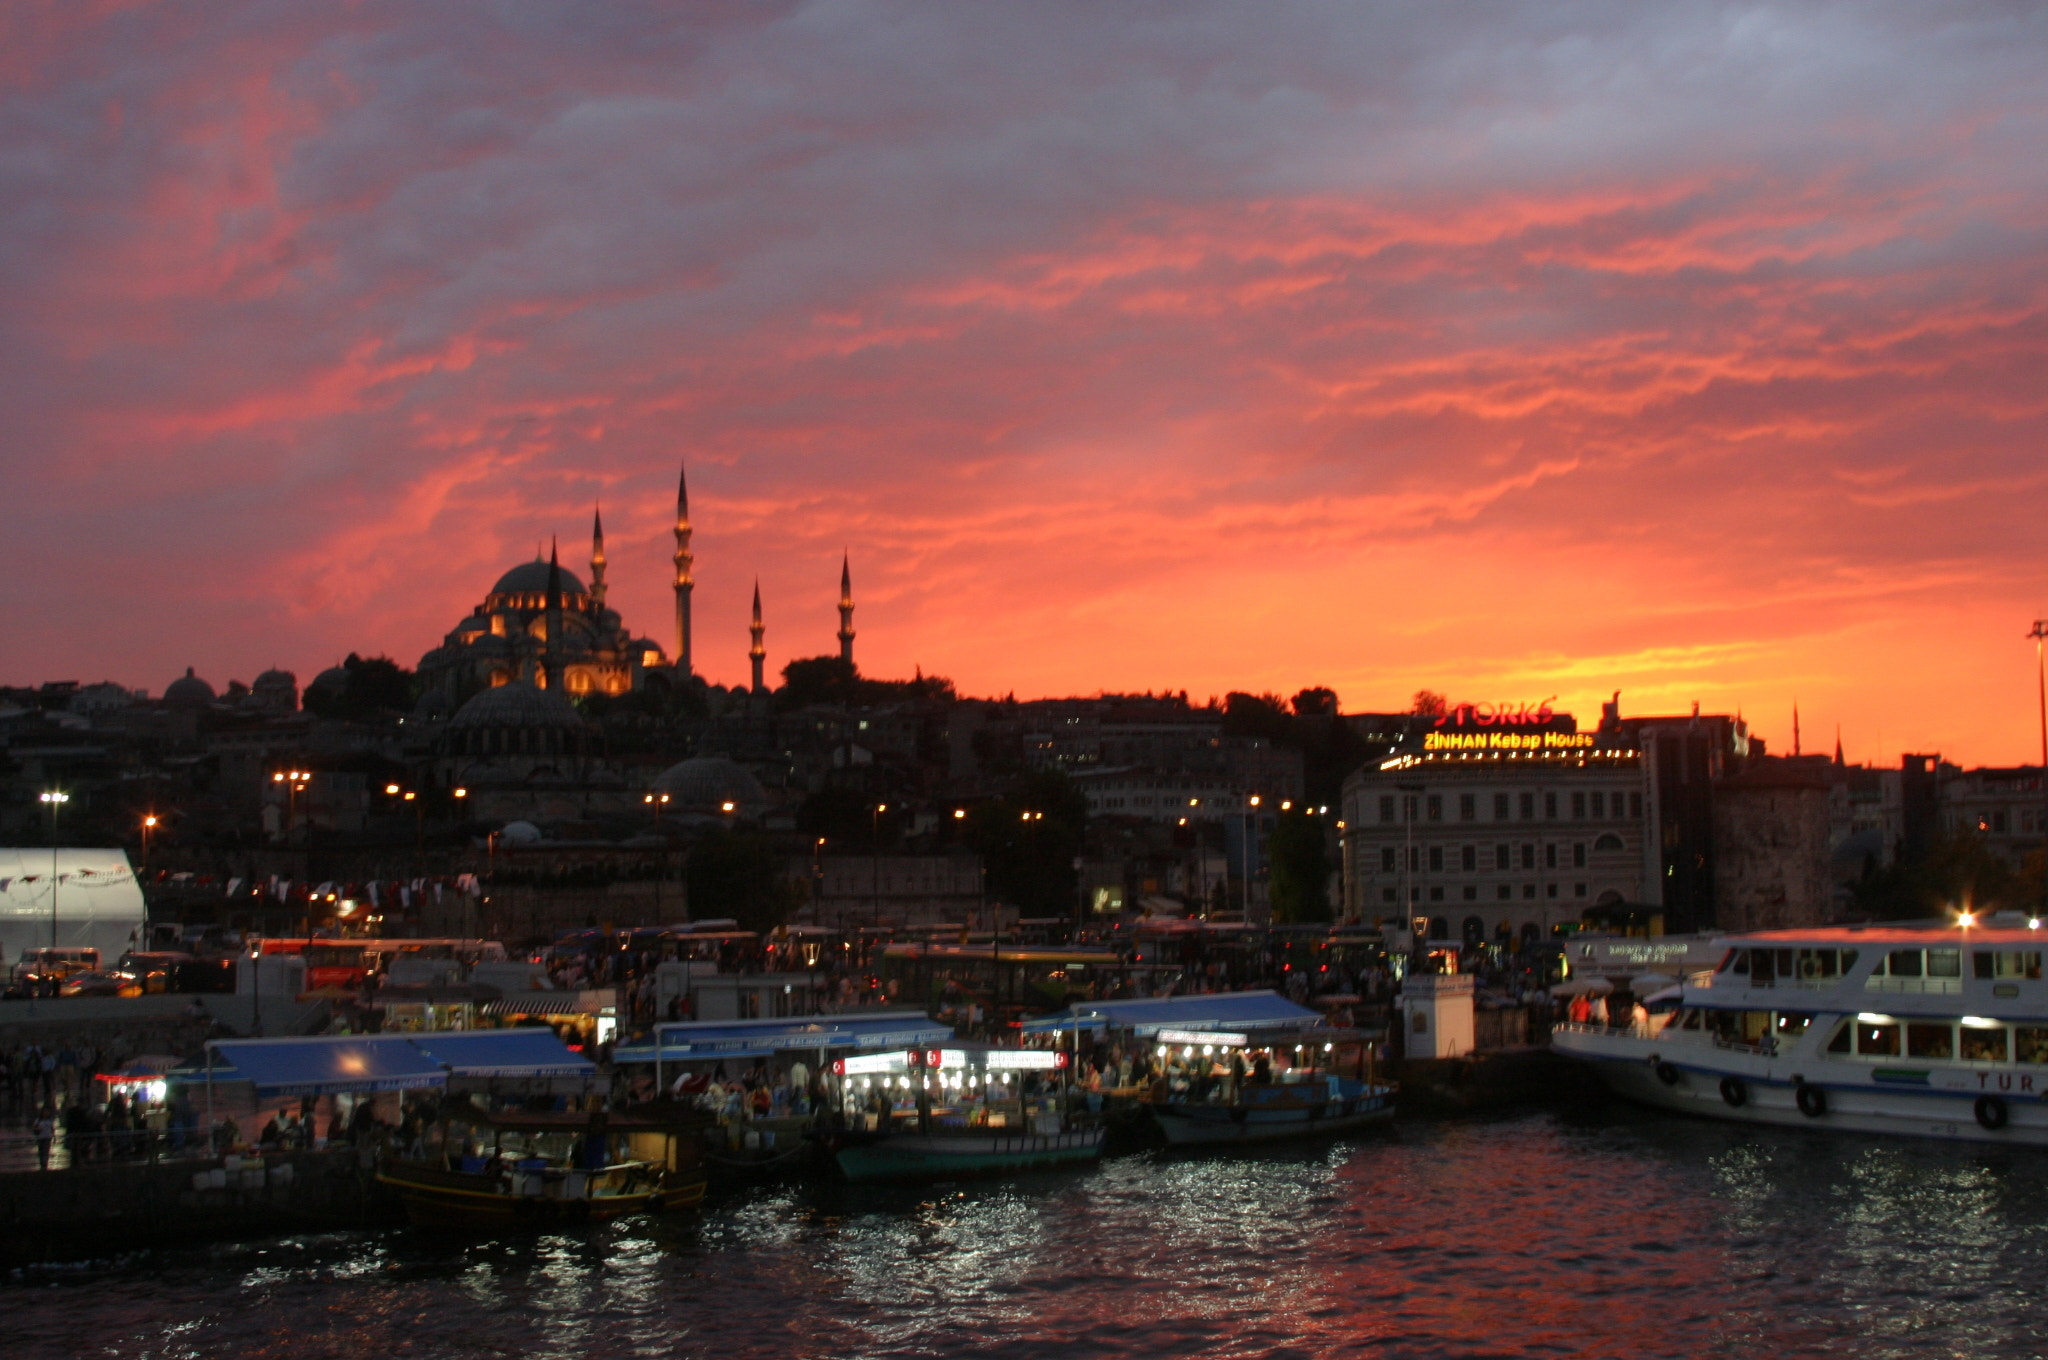 Photograph Sultan Ahmet Sunset by Malik Vision on 500px